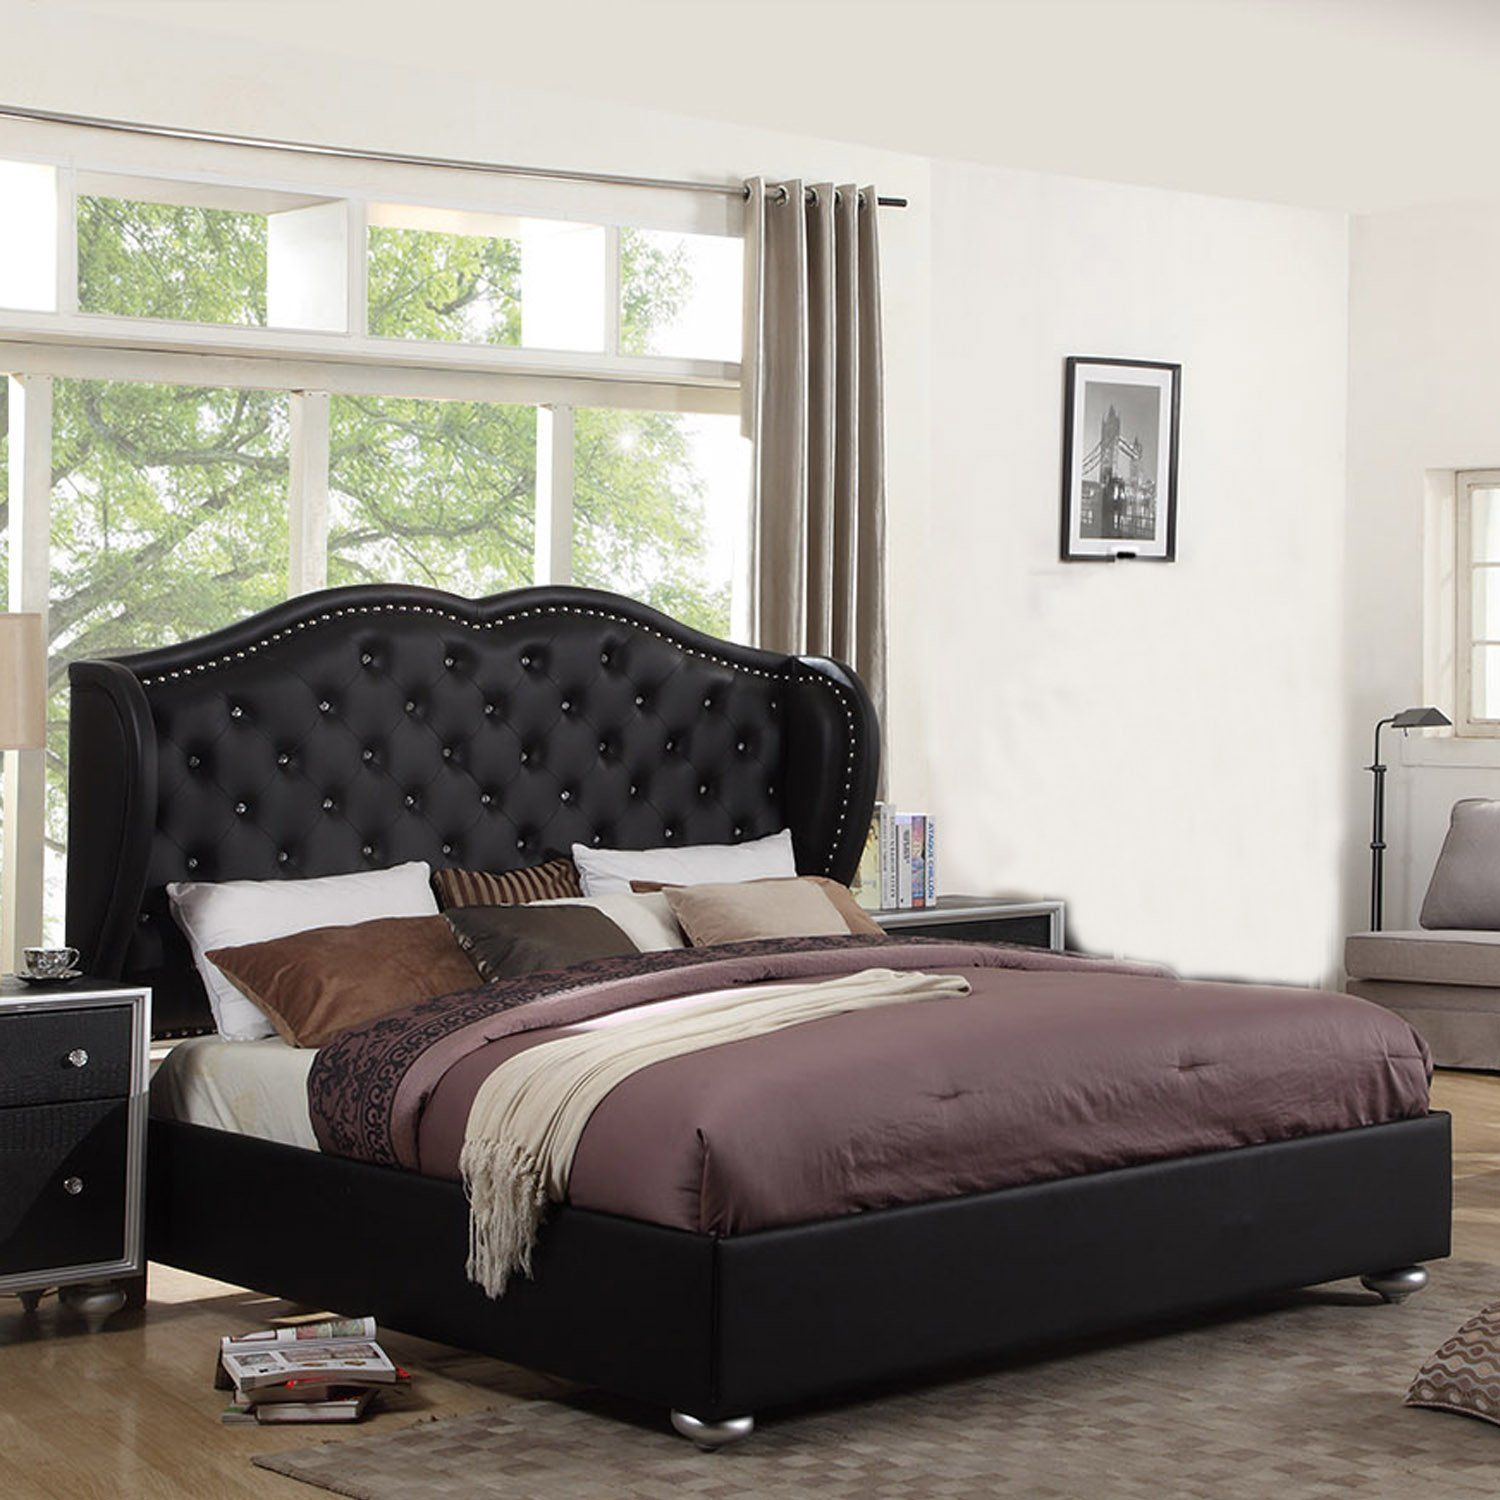 Ufe courtney black platform bed diamond tufting with Platform king bed